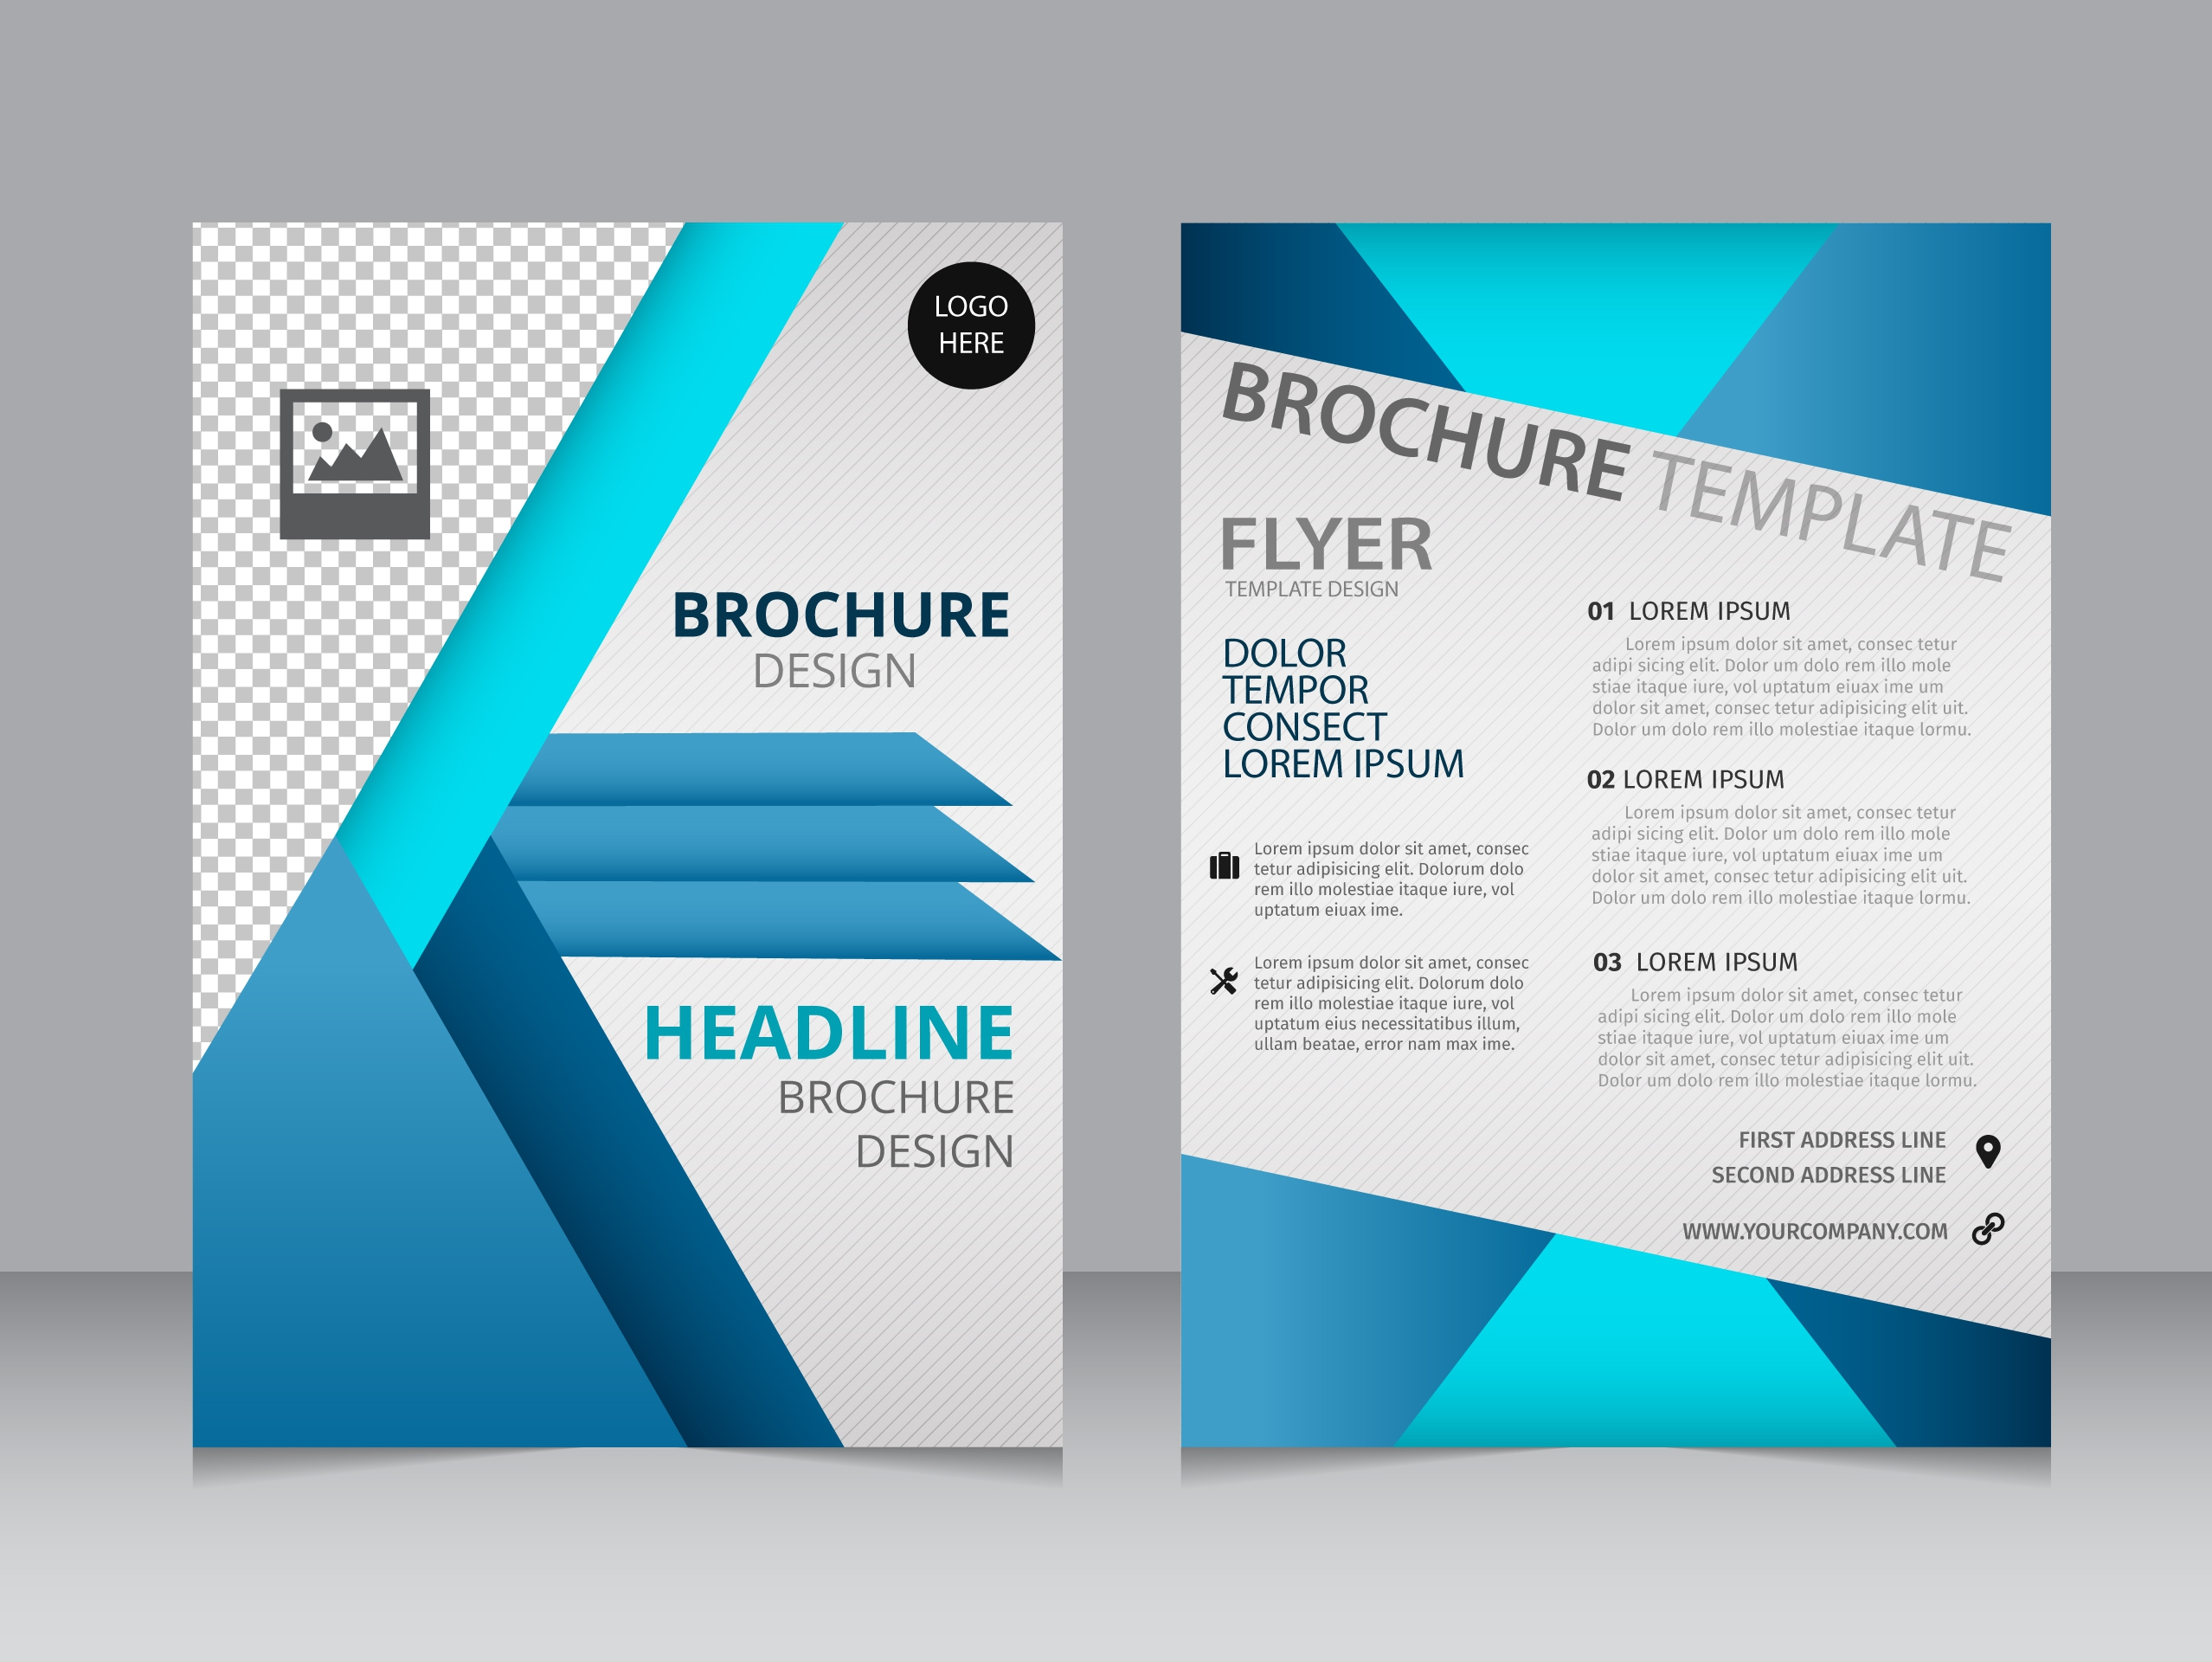 sample brochure template - 11 free sample travel brochure templates printable samples